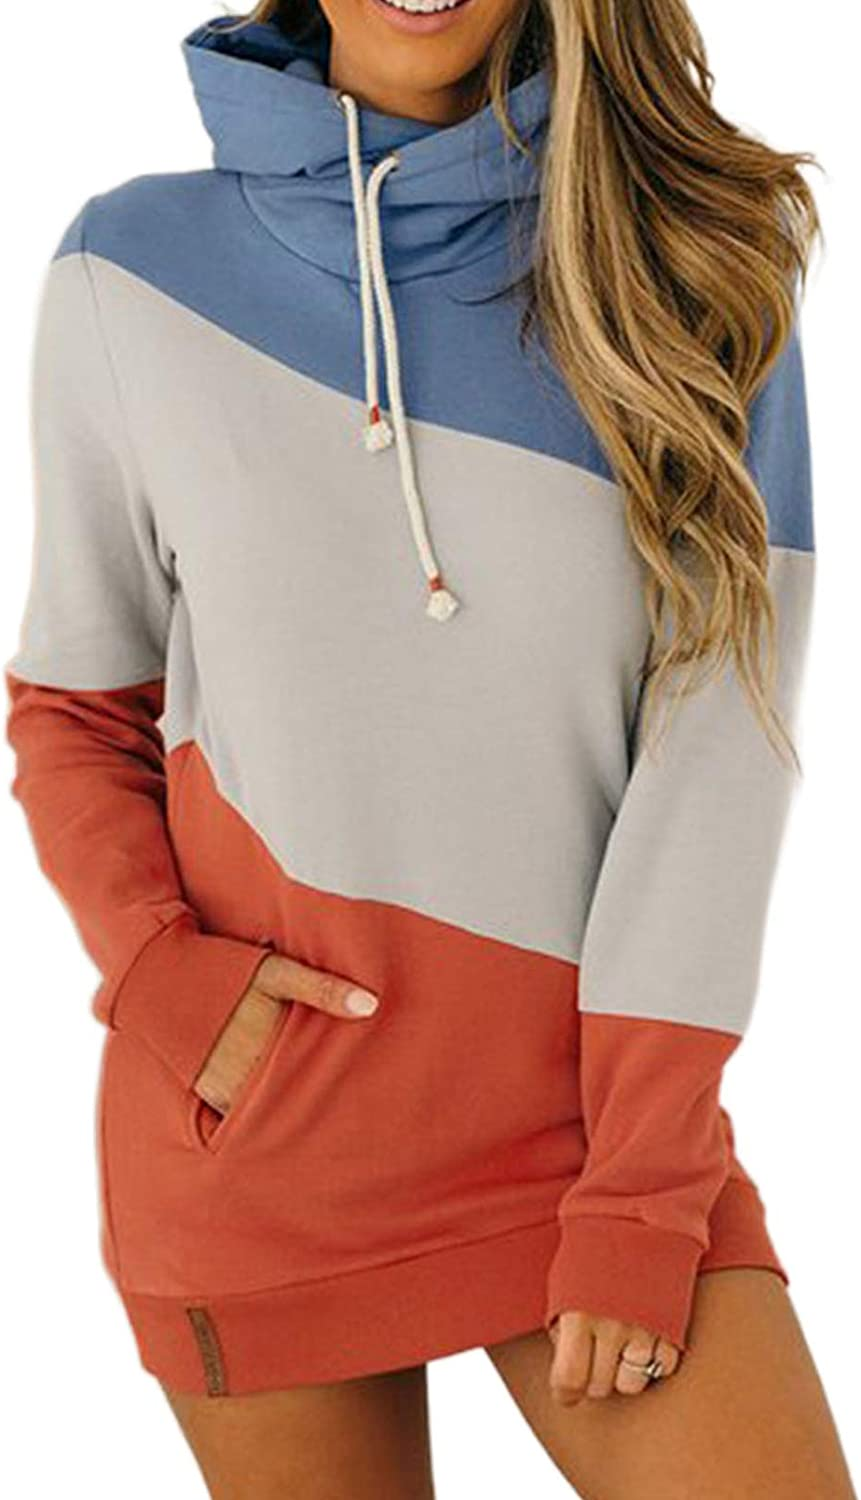 ROSKIKI Womens Casual Zip Up Sweatshirt Cowl Neck Drawstring Hooded Pullover Top with Pockets